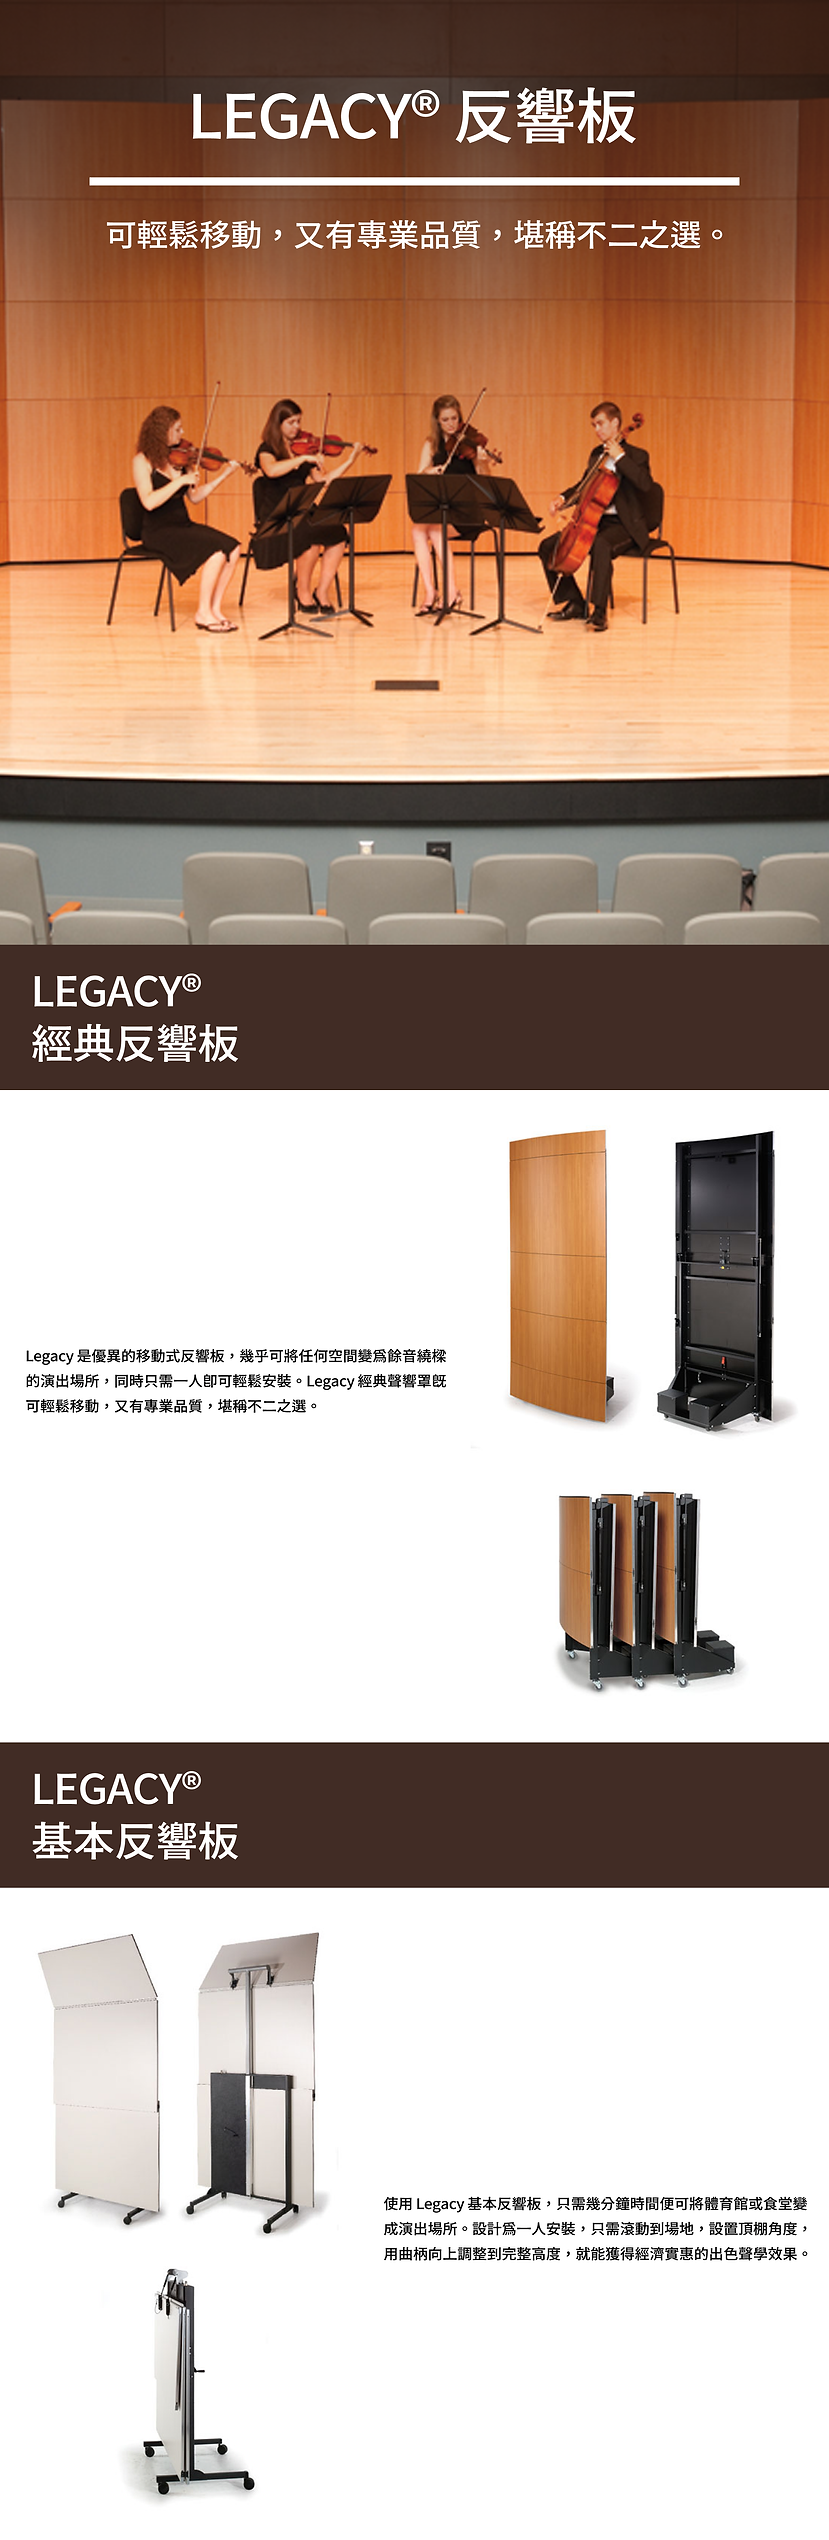 Legacy-1拷貝.png